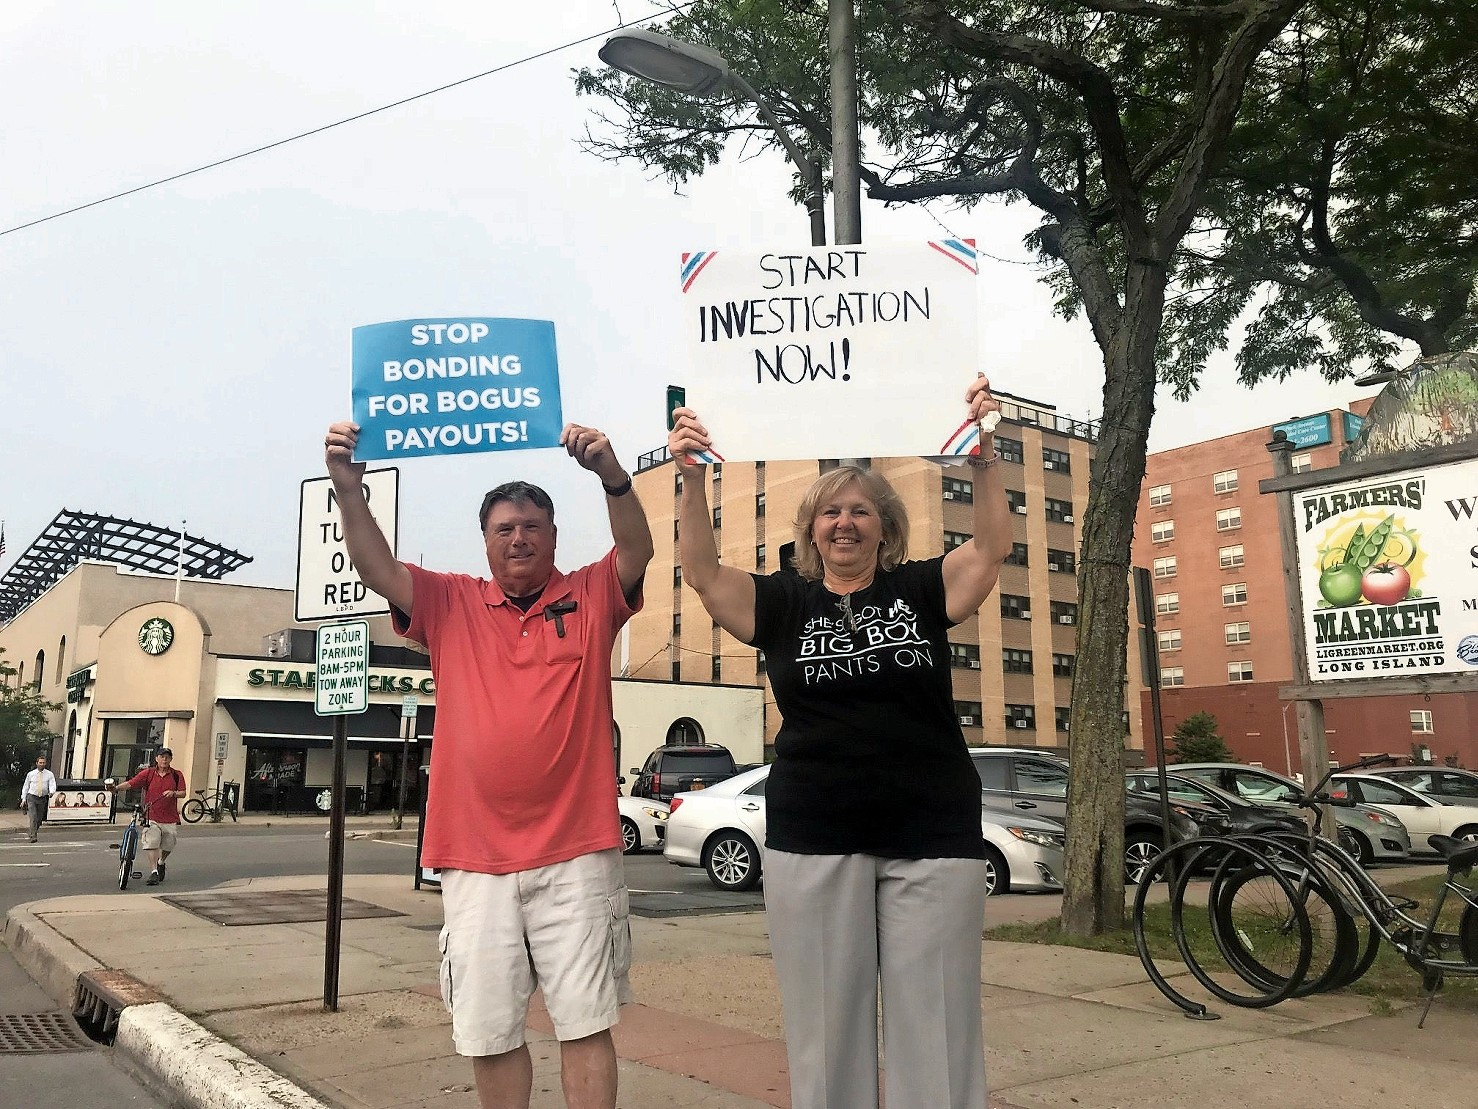 Bill Tansey and Nassau County Legislator Denise Ford at a protest outside City Hall on July 3 calling for an investigation into recent payouts to a number of employees, including former City Manager Jack Schnirman.